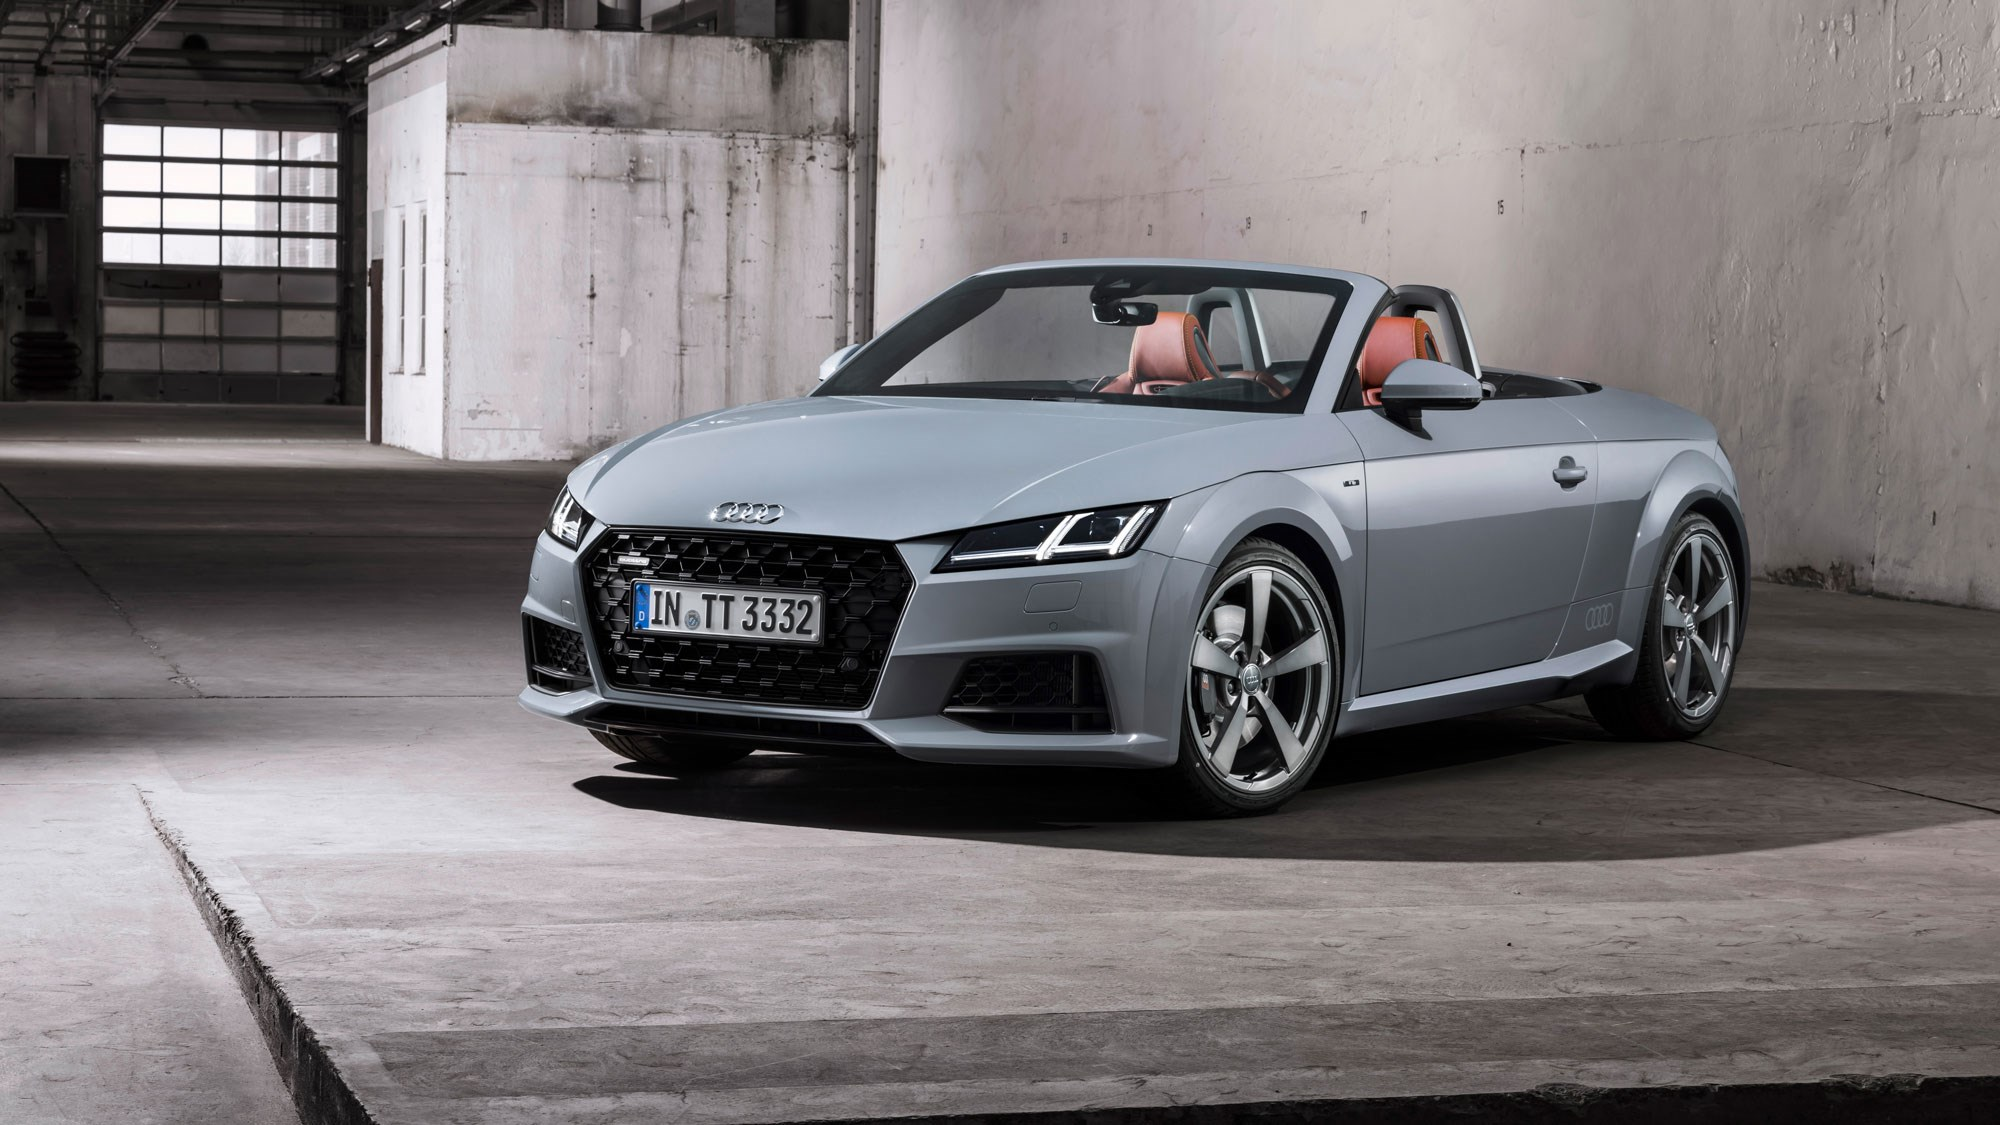 new 2019 audi tt revealed new engines design and tech car magazine. Black Bedroom Furniture Sets. Home Design Ideas